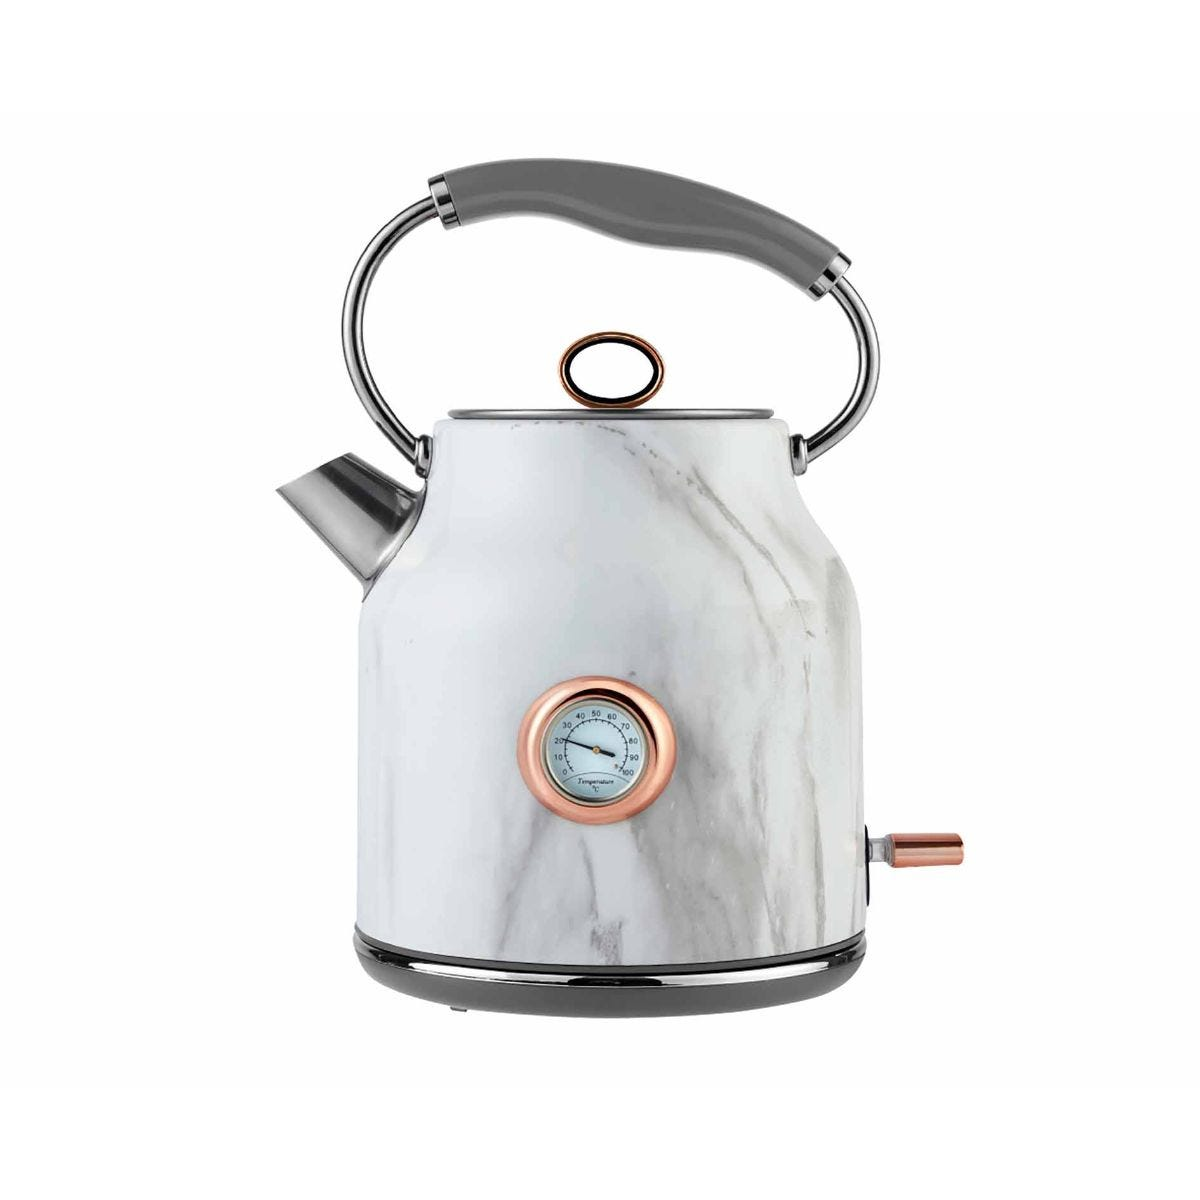 Tower 3KW Rose Gold Stainless Steel Kettle 1.7L, rose gold